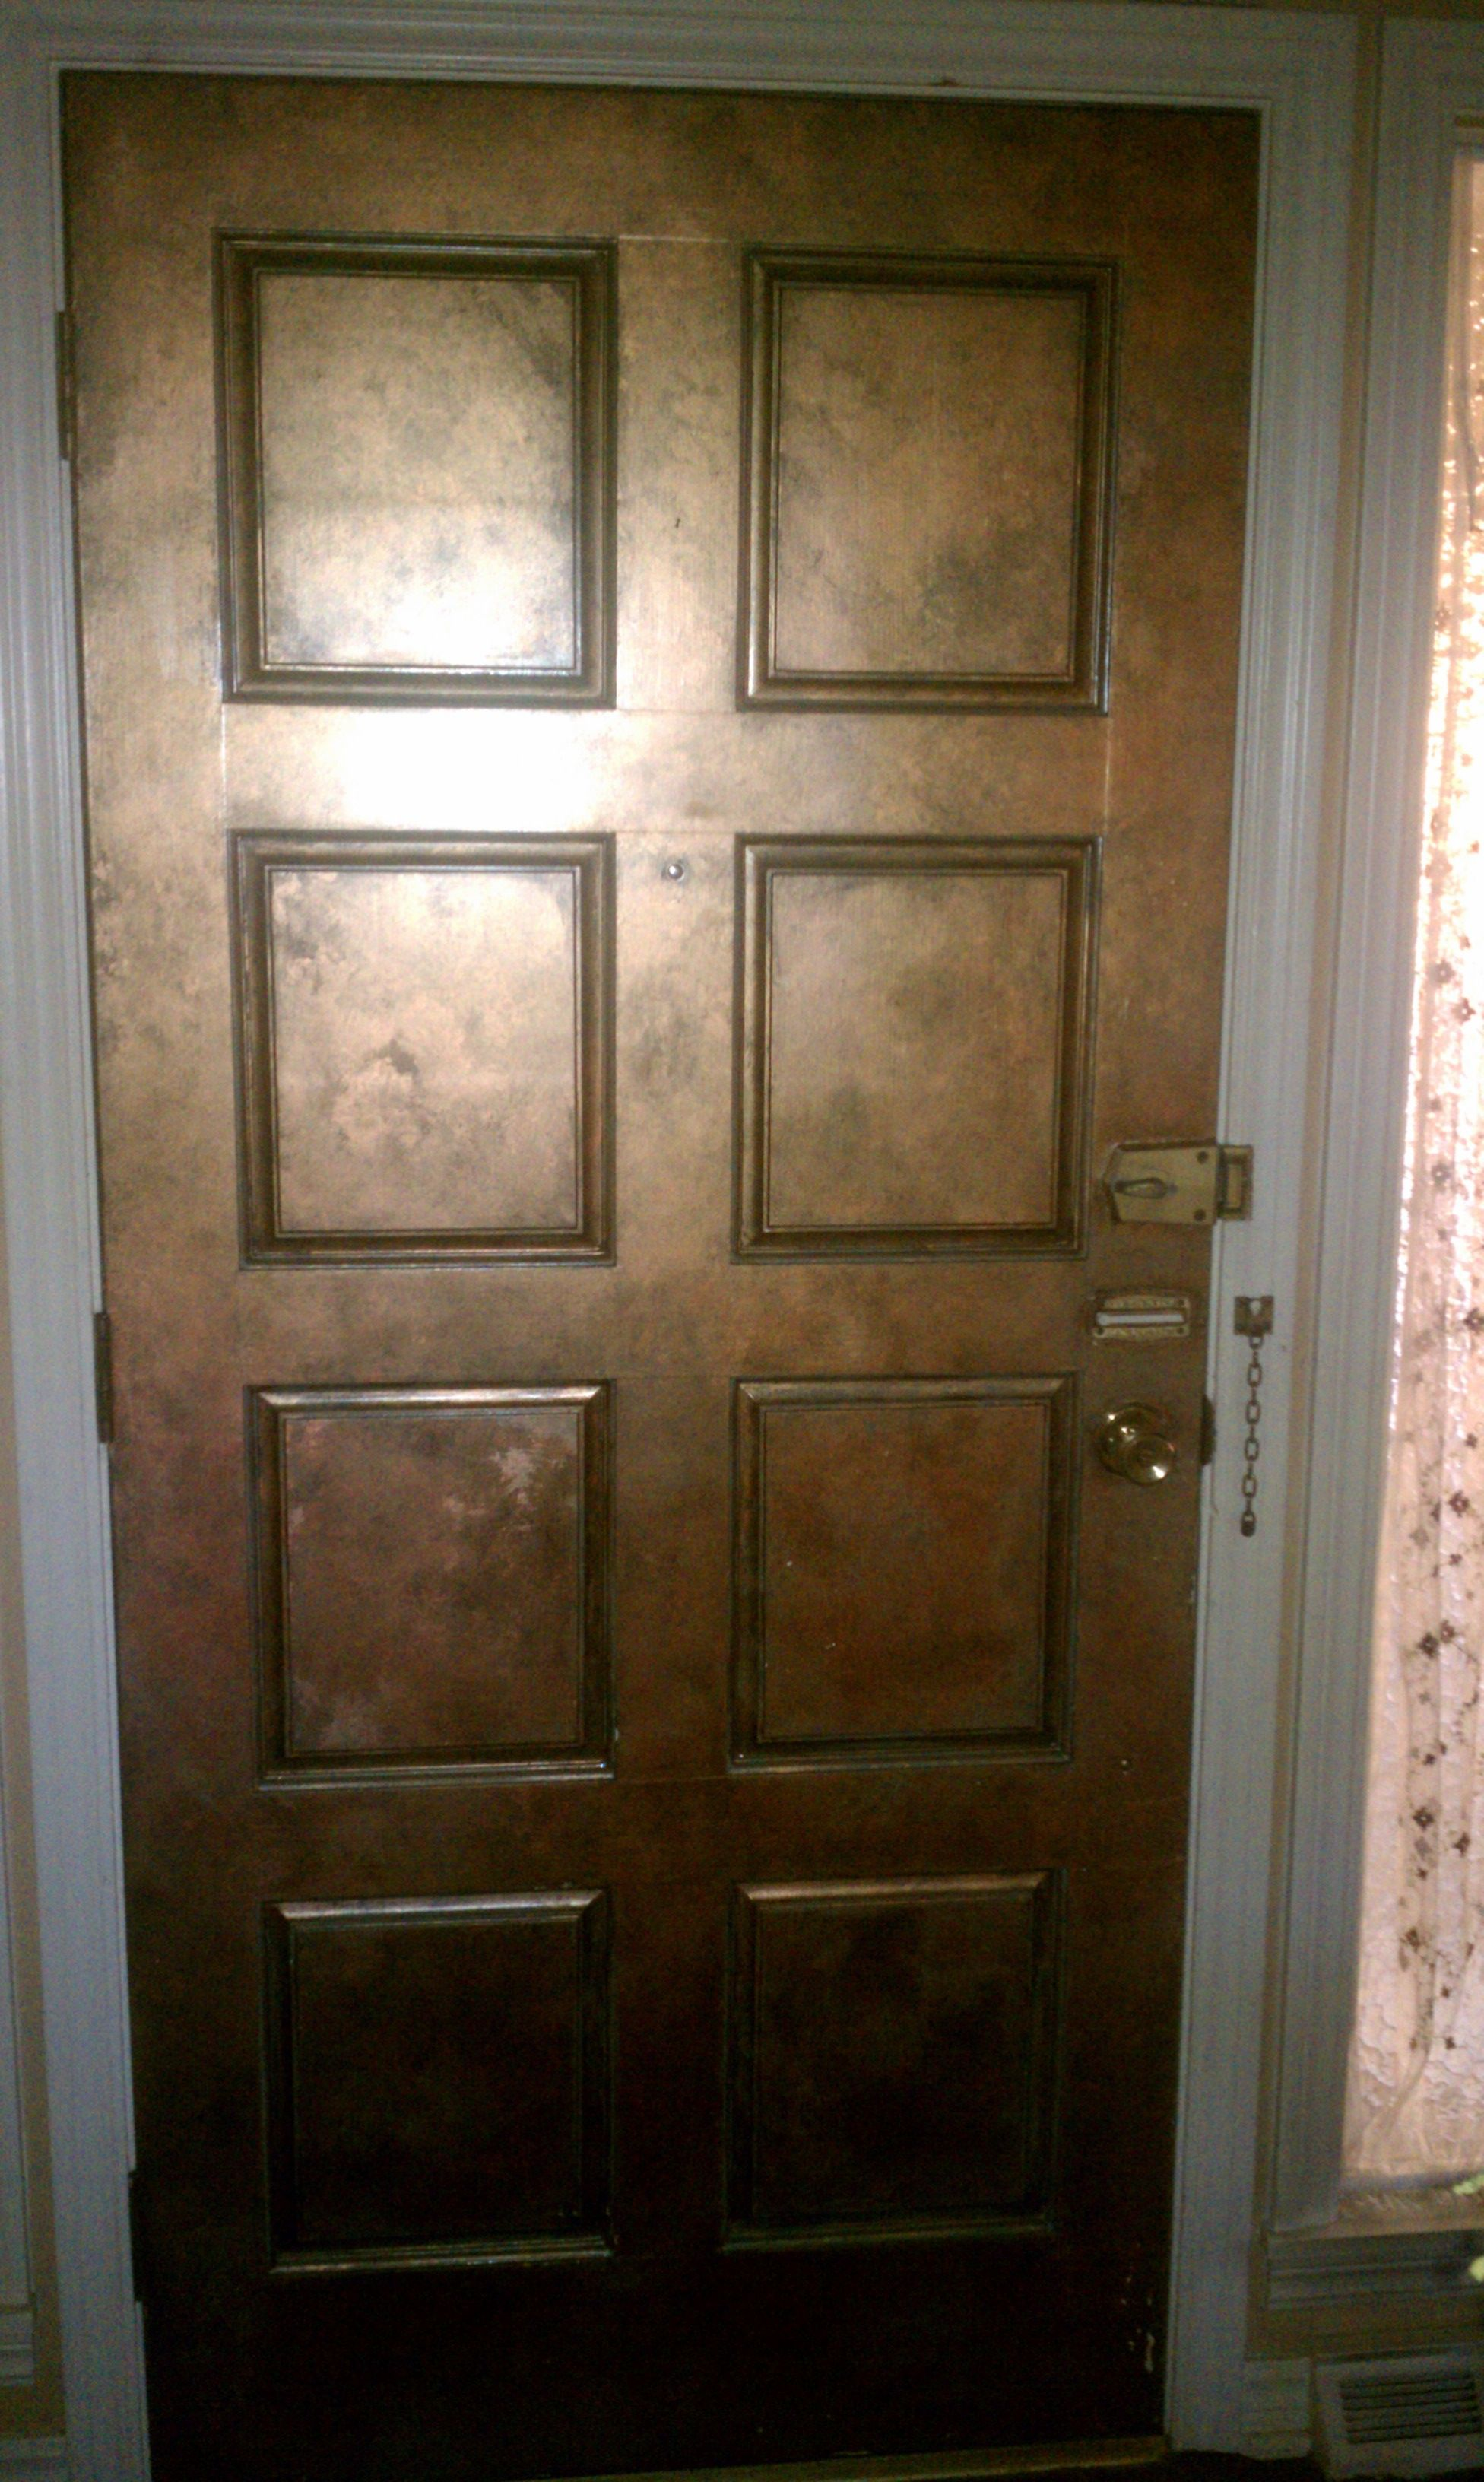 Le Meilleur Ordinary Wood Door Faux Painted To Look Like Copper Fun Ce Mois Ci